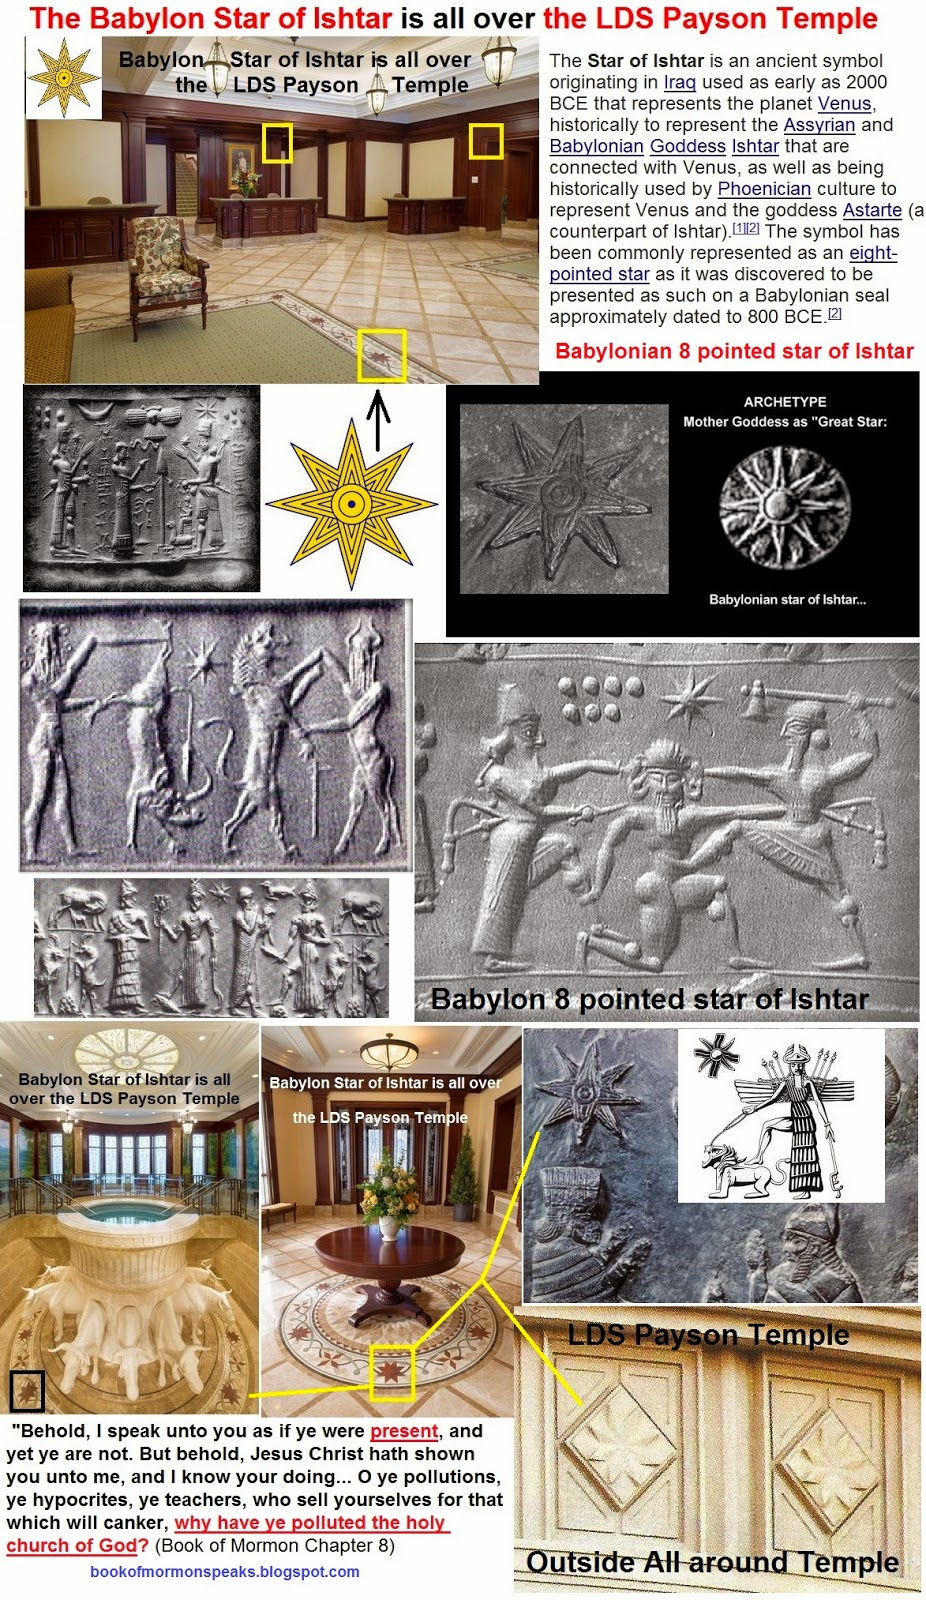 Book of Mormon Speaks from the Dust: Babylonian 8 pointed Star of Ishtar is  all over the LDS Payson Temple